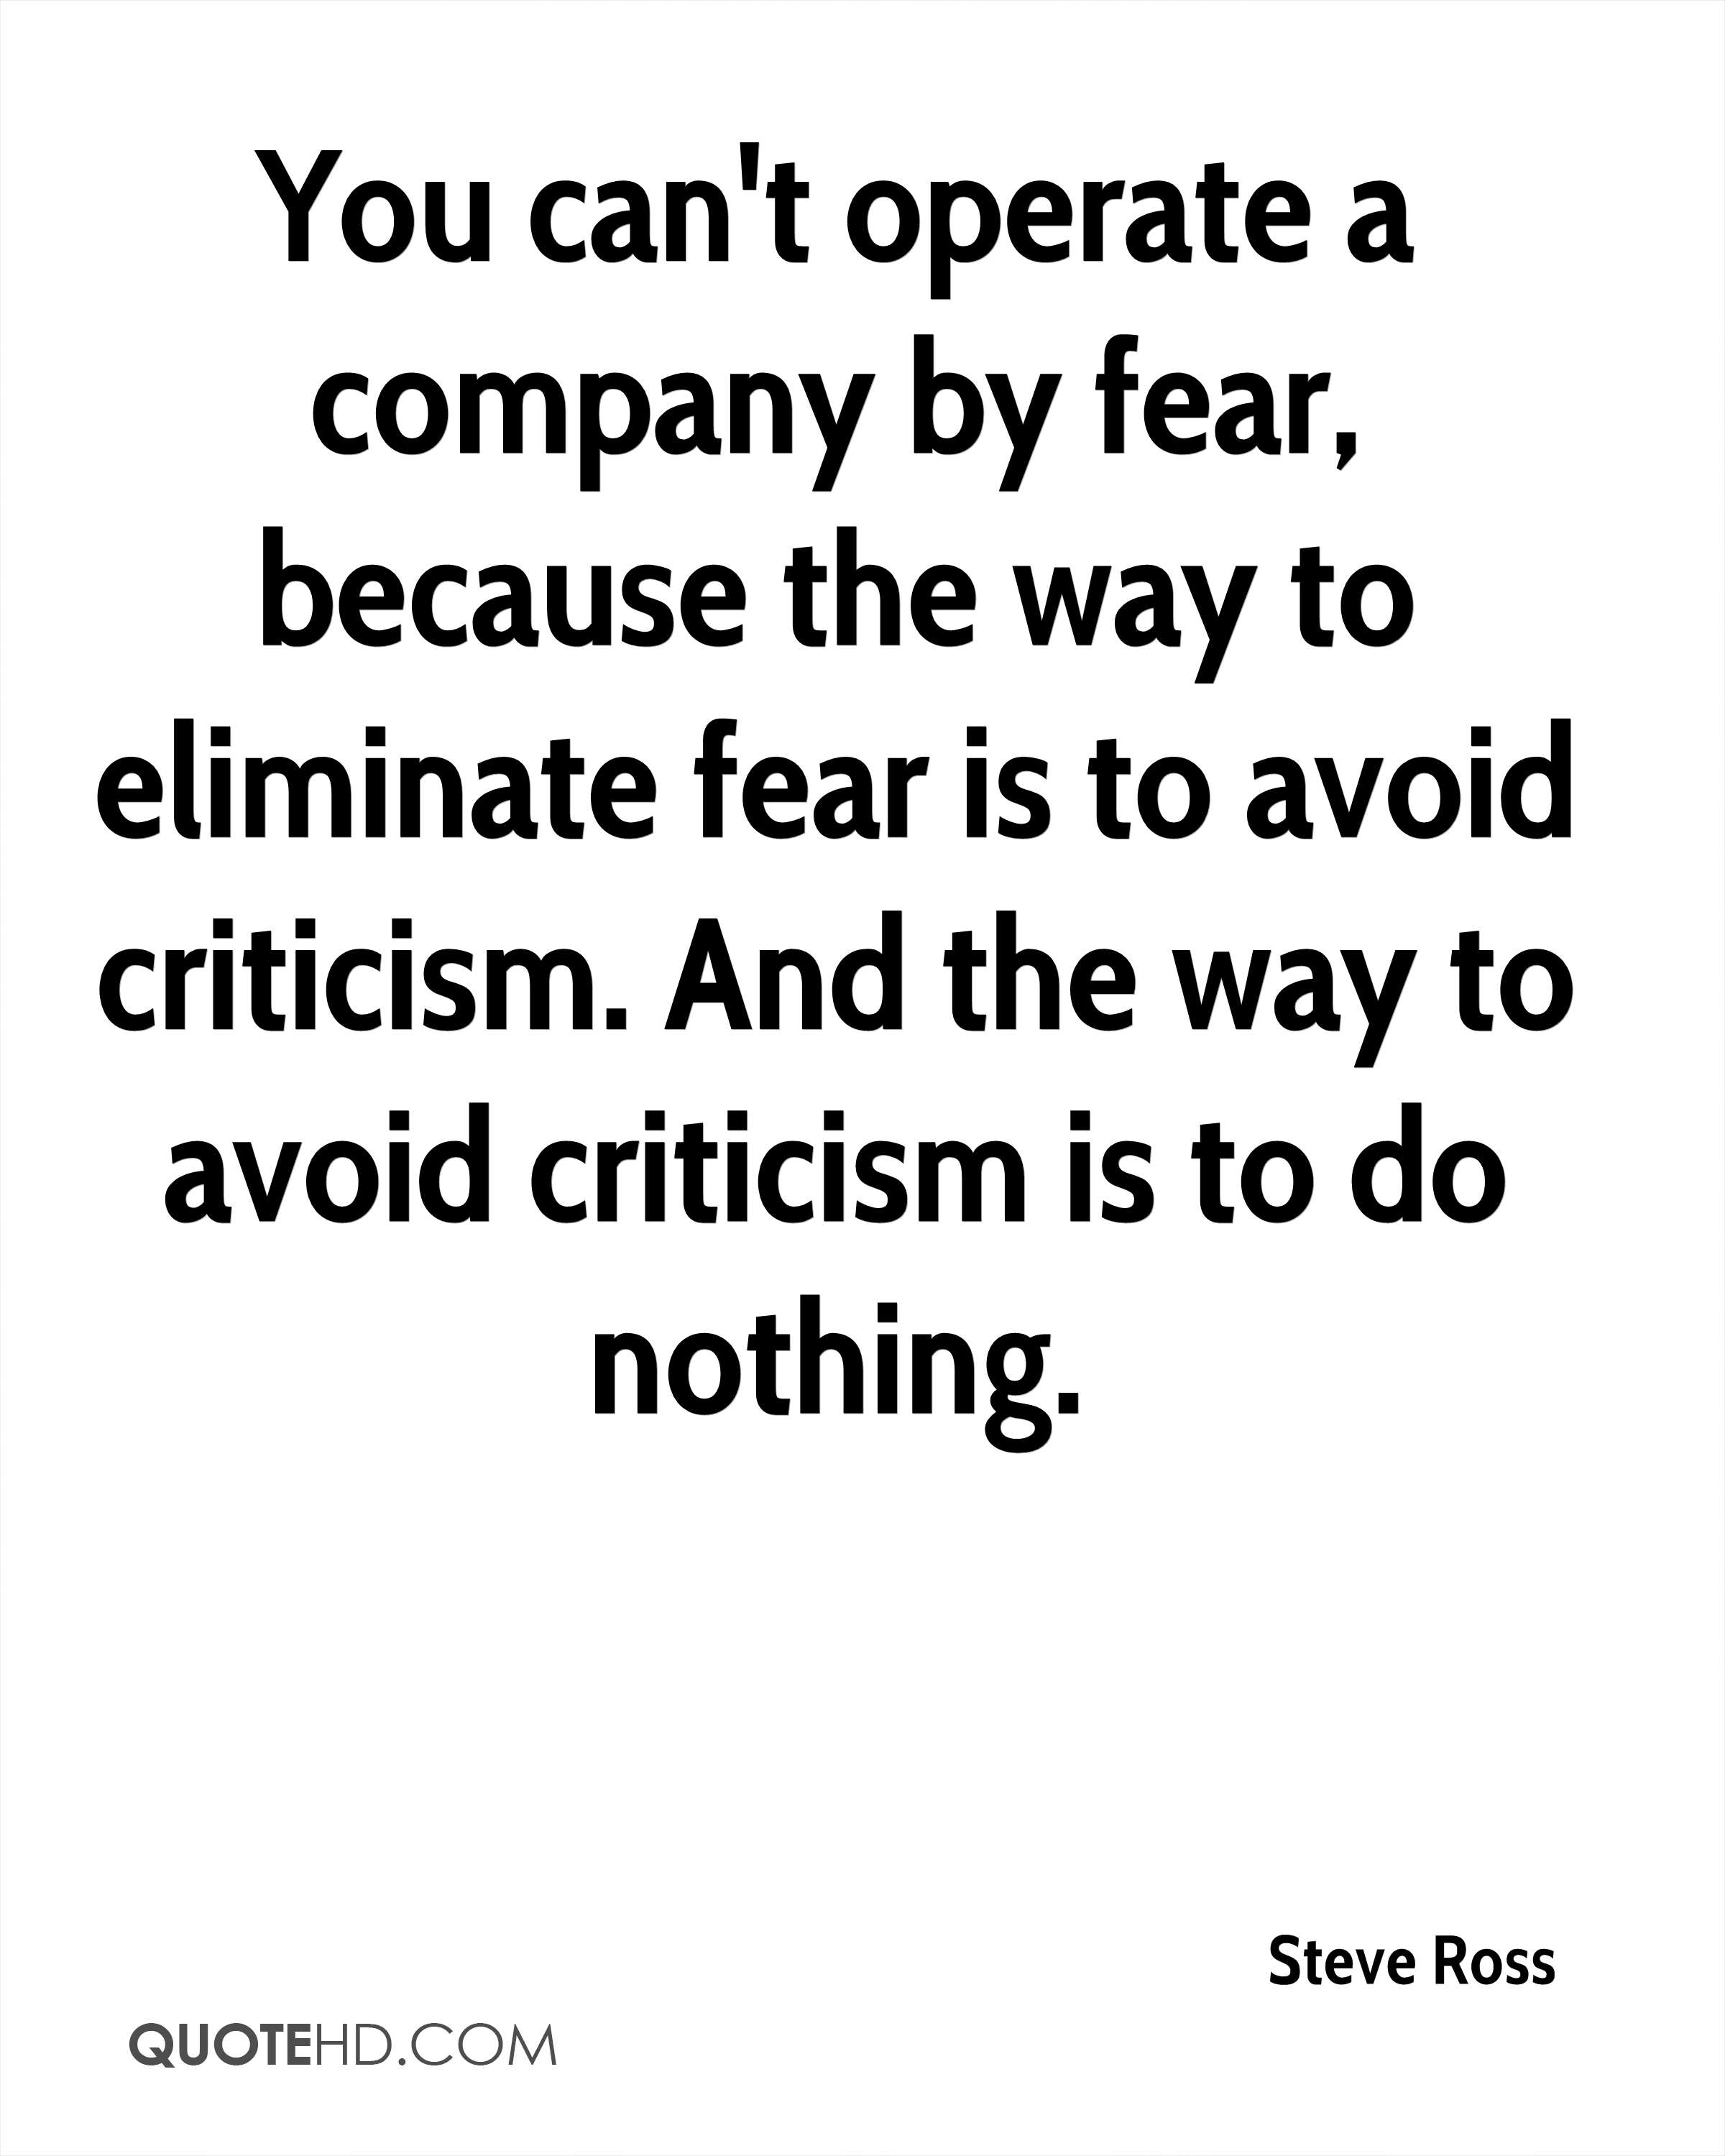 You can't operate a company by fear, because the way to eliminate fear is to avoid criticism. And the way to avoid criticism is to do nothing.